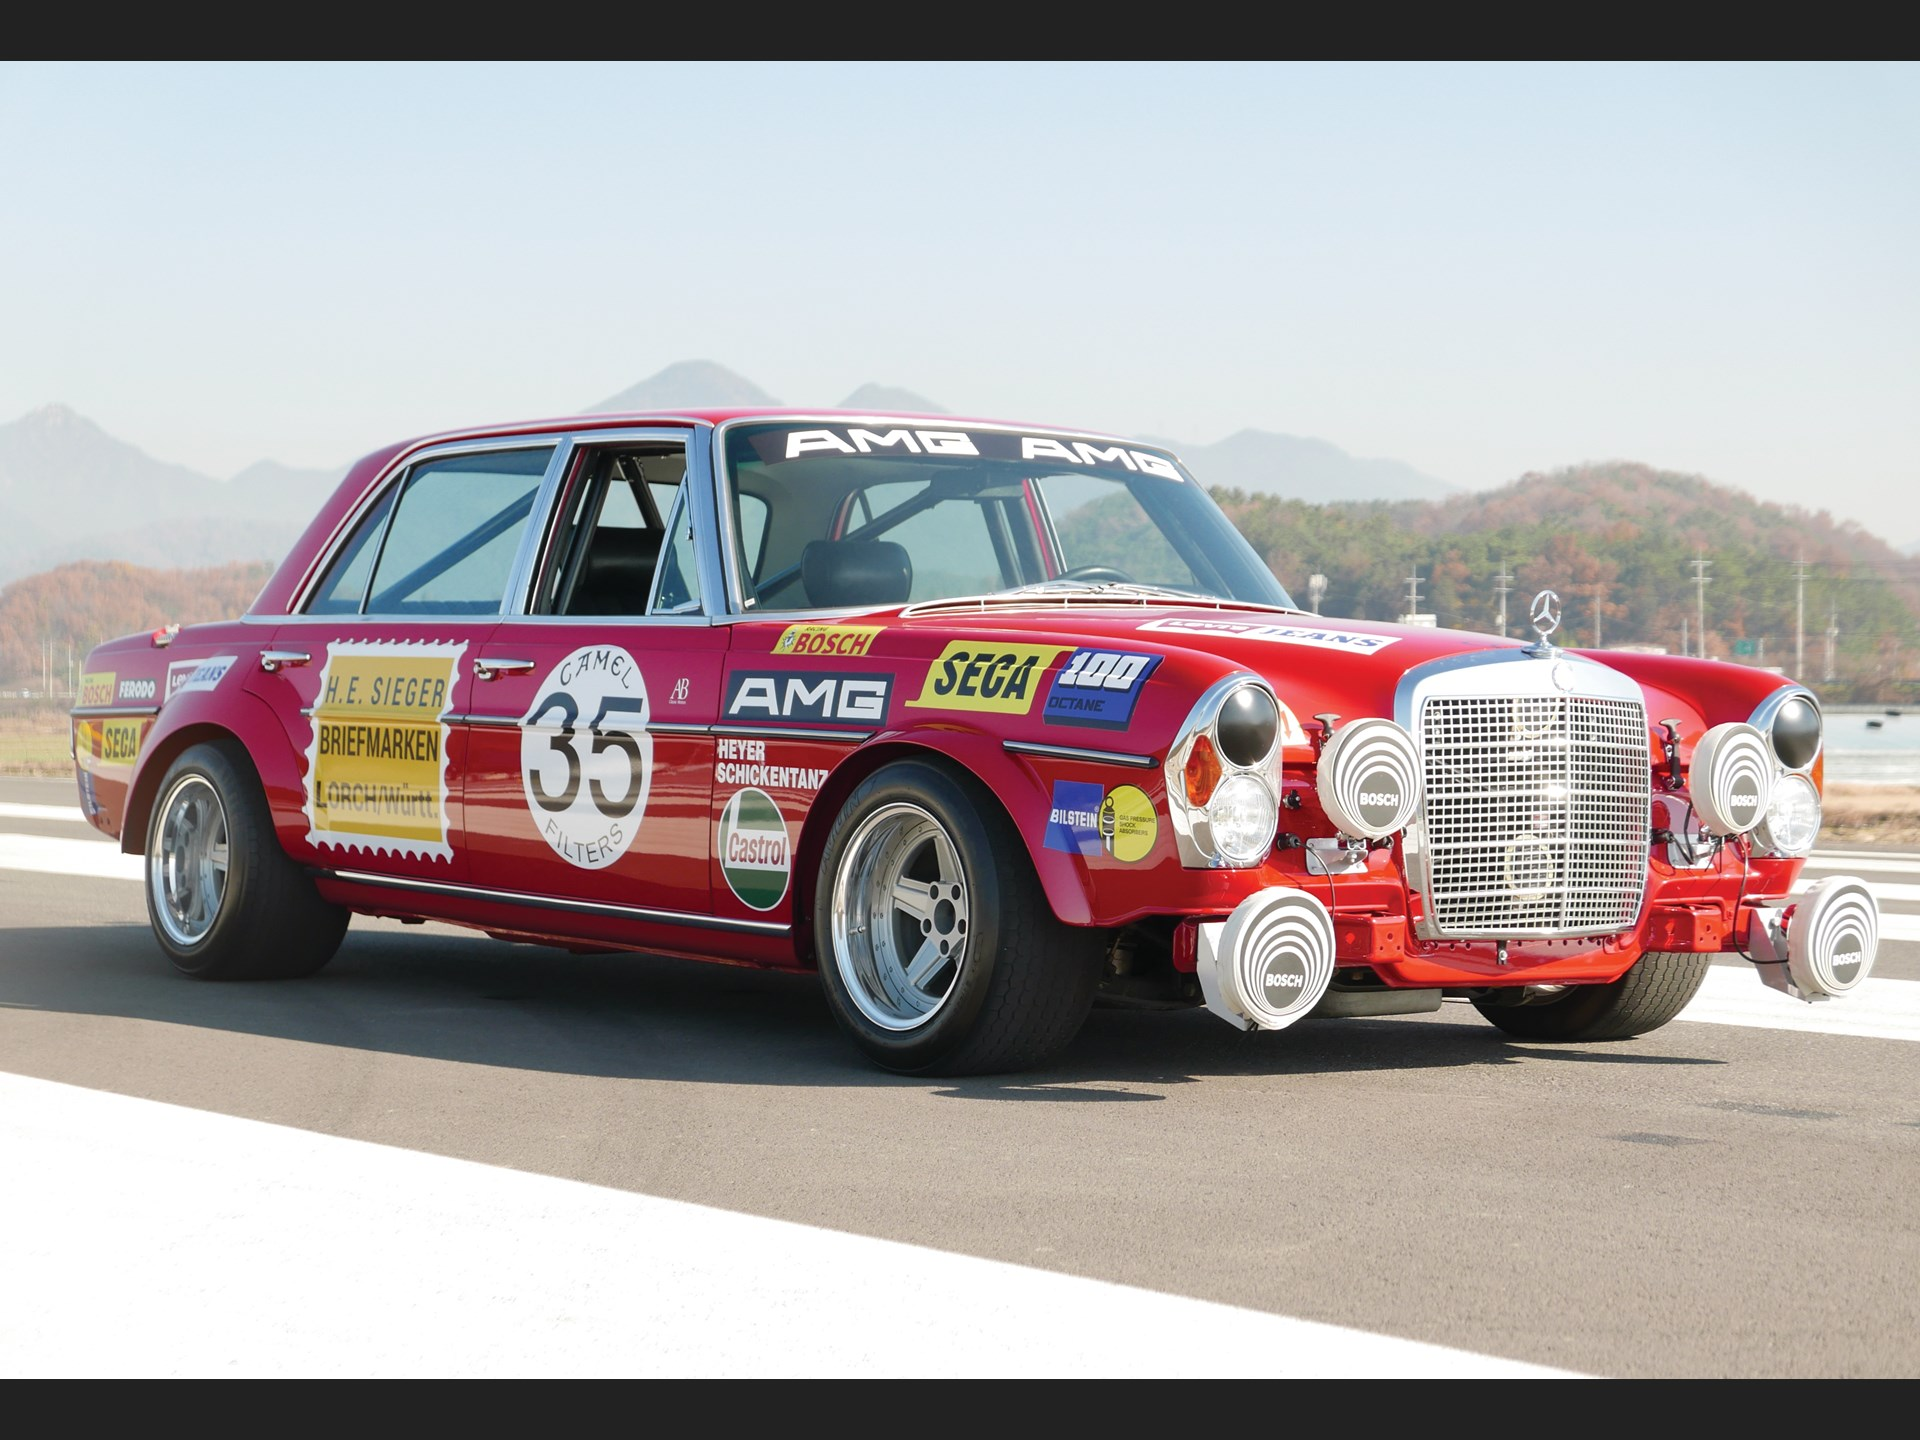 Not long ago, we told you about the Red Pig (German: Rote Sau) project by Reviva Inc. The U.S.-based auto restoration shop attempted to recreate the legendary AMG racing saloon for the 2019 SEMA show. Today, another tuner unveiled its own version of the historic vehicle.